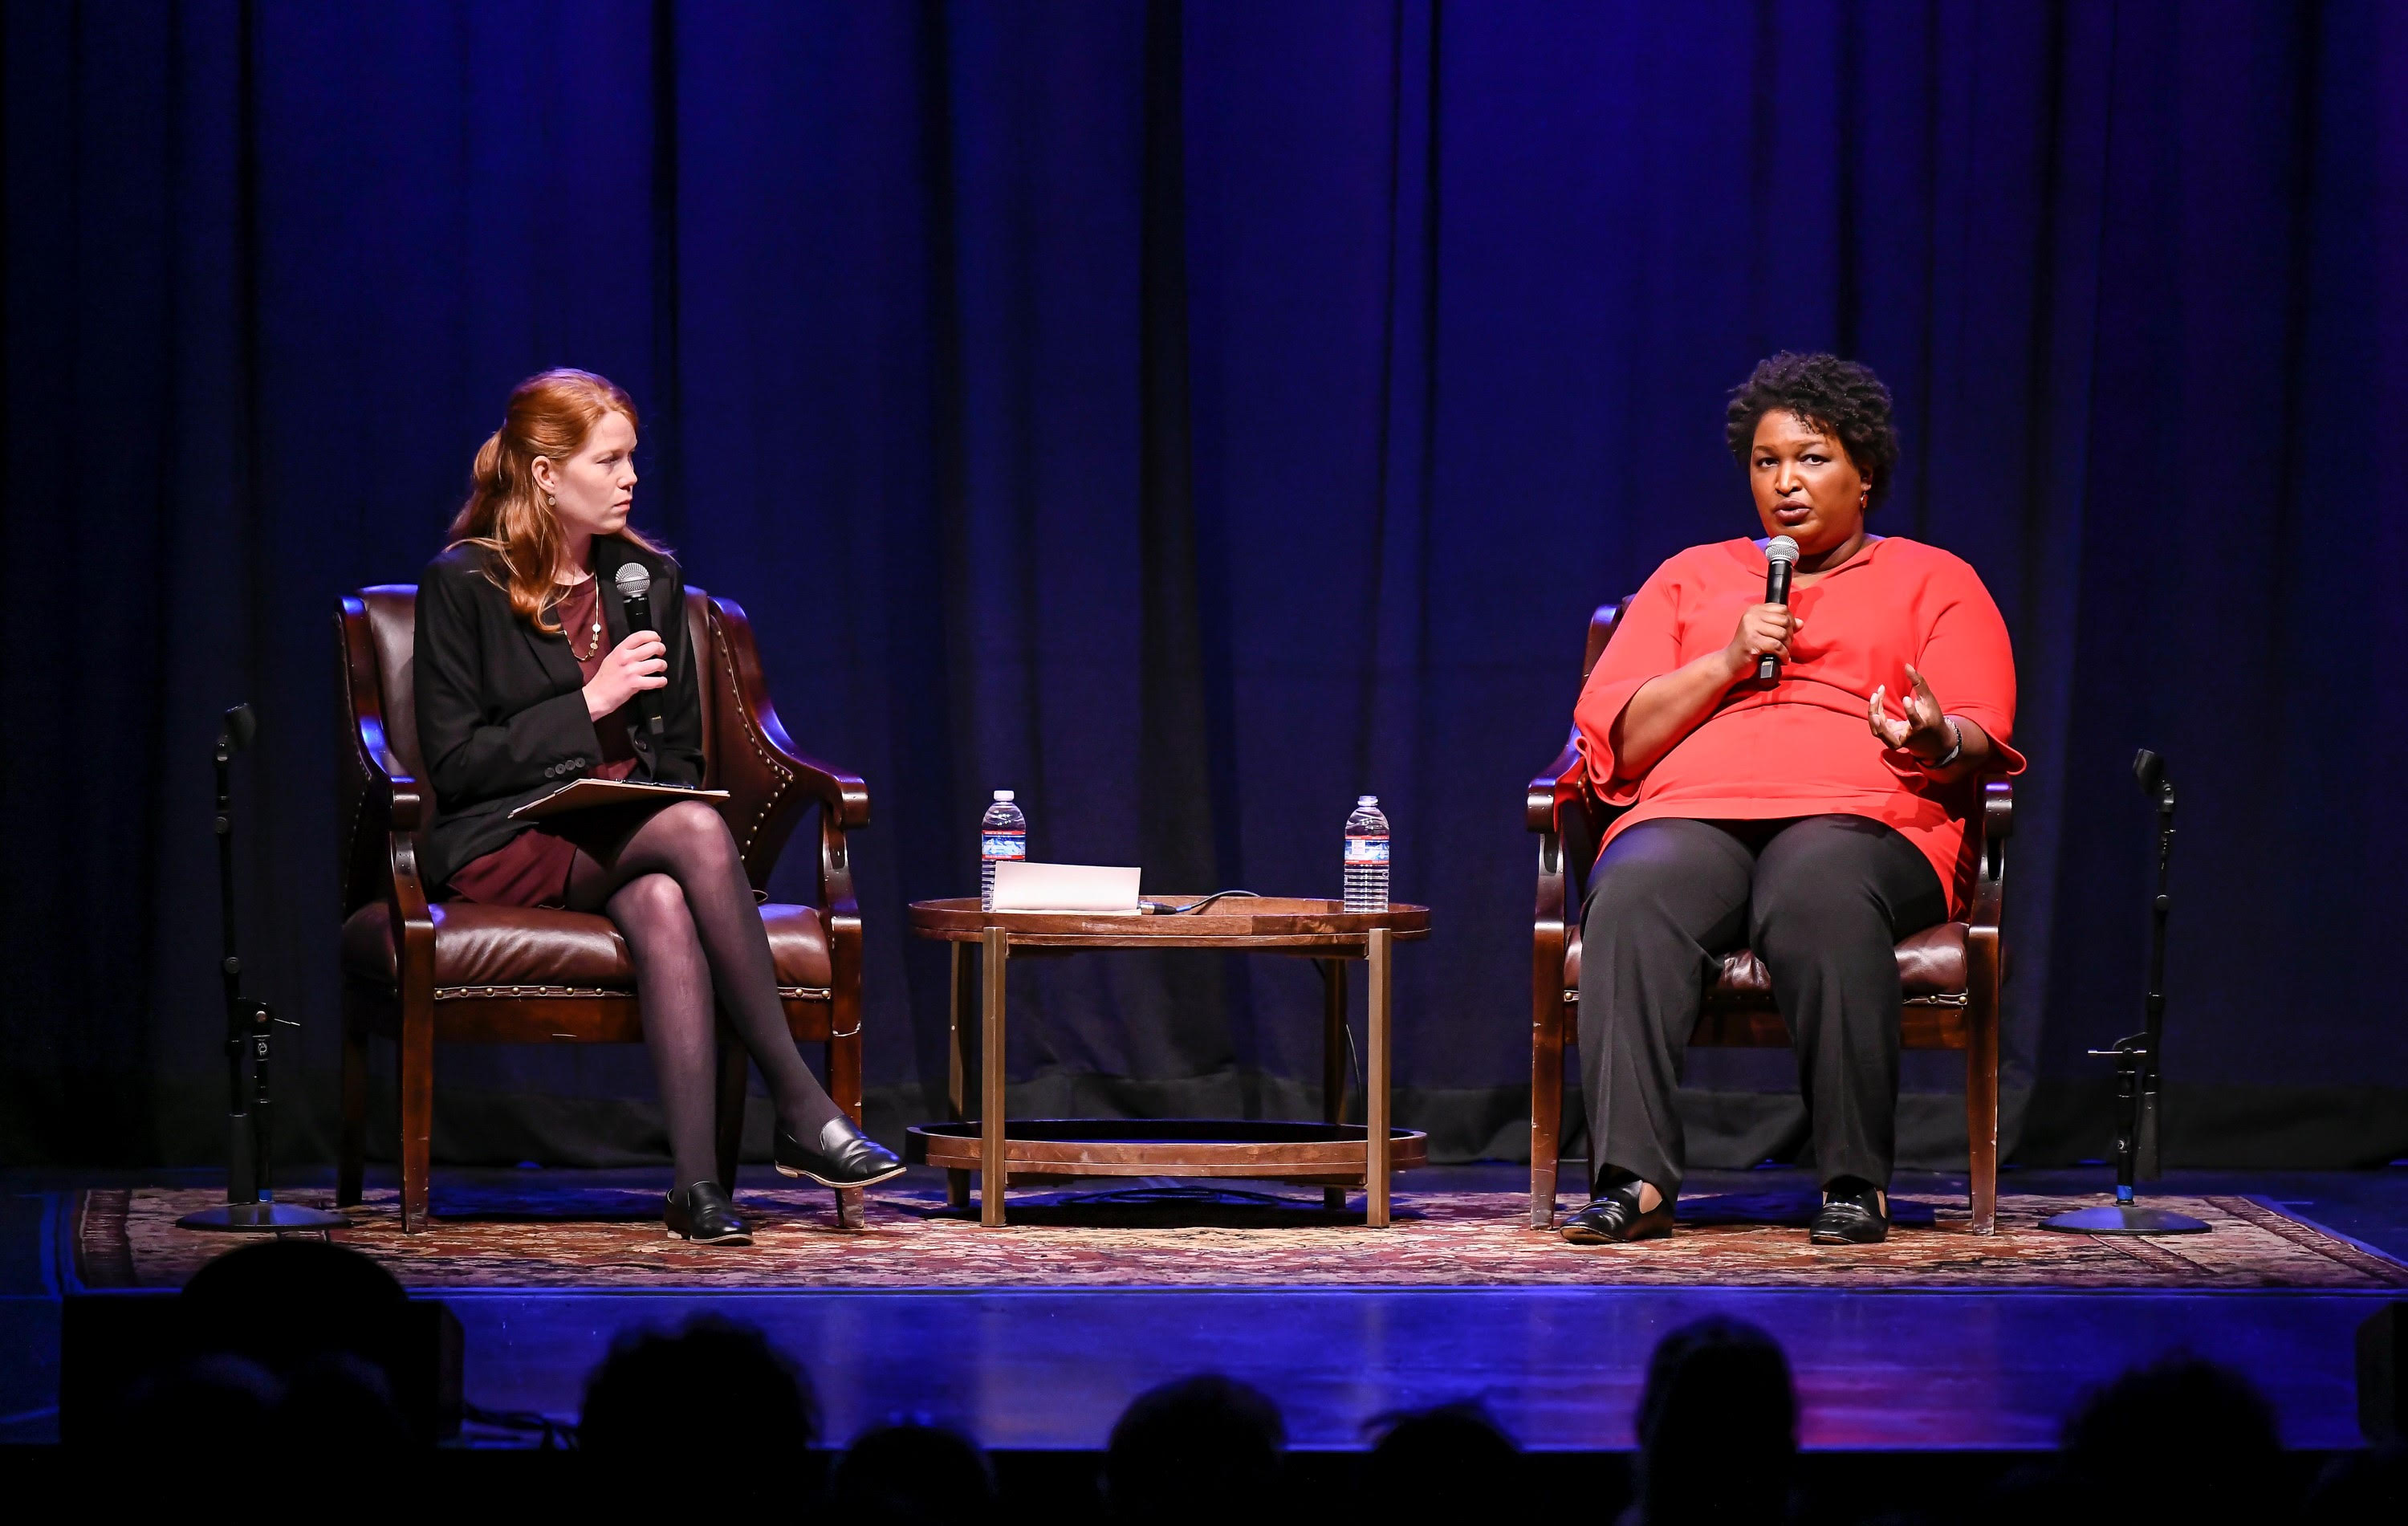 Caption: Adia White and Stacey Abrams, Credit: Steve Jennings